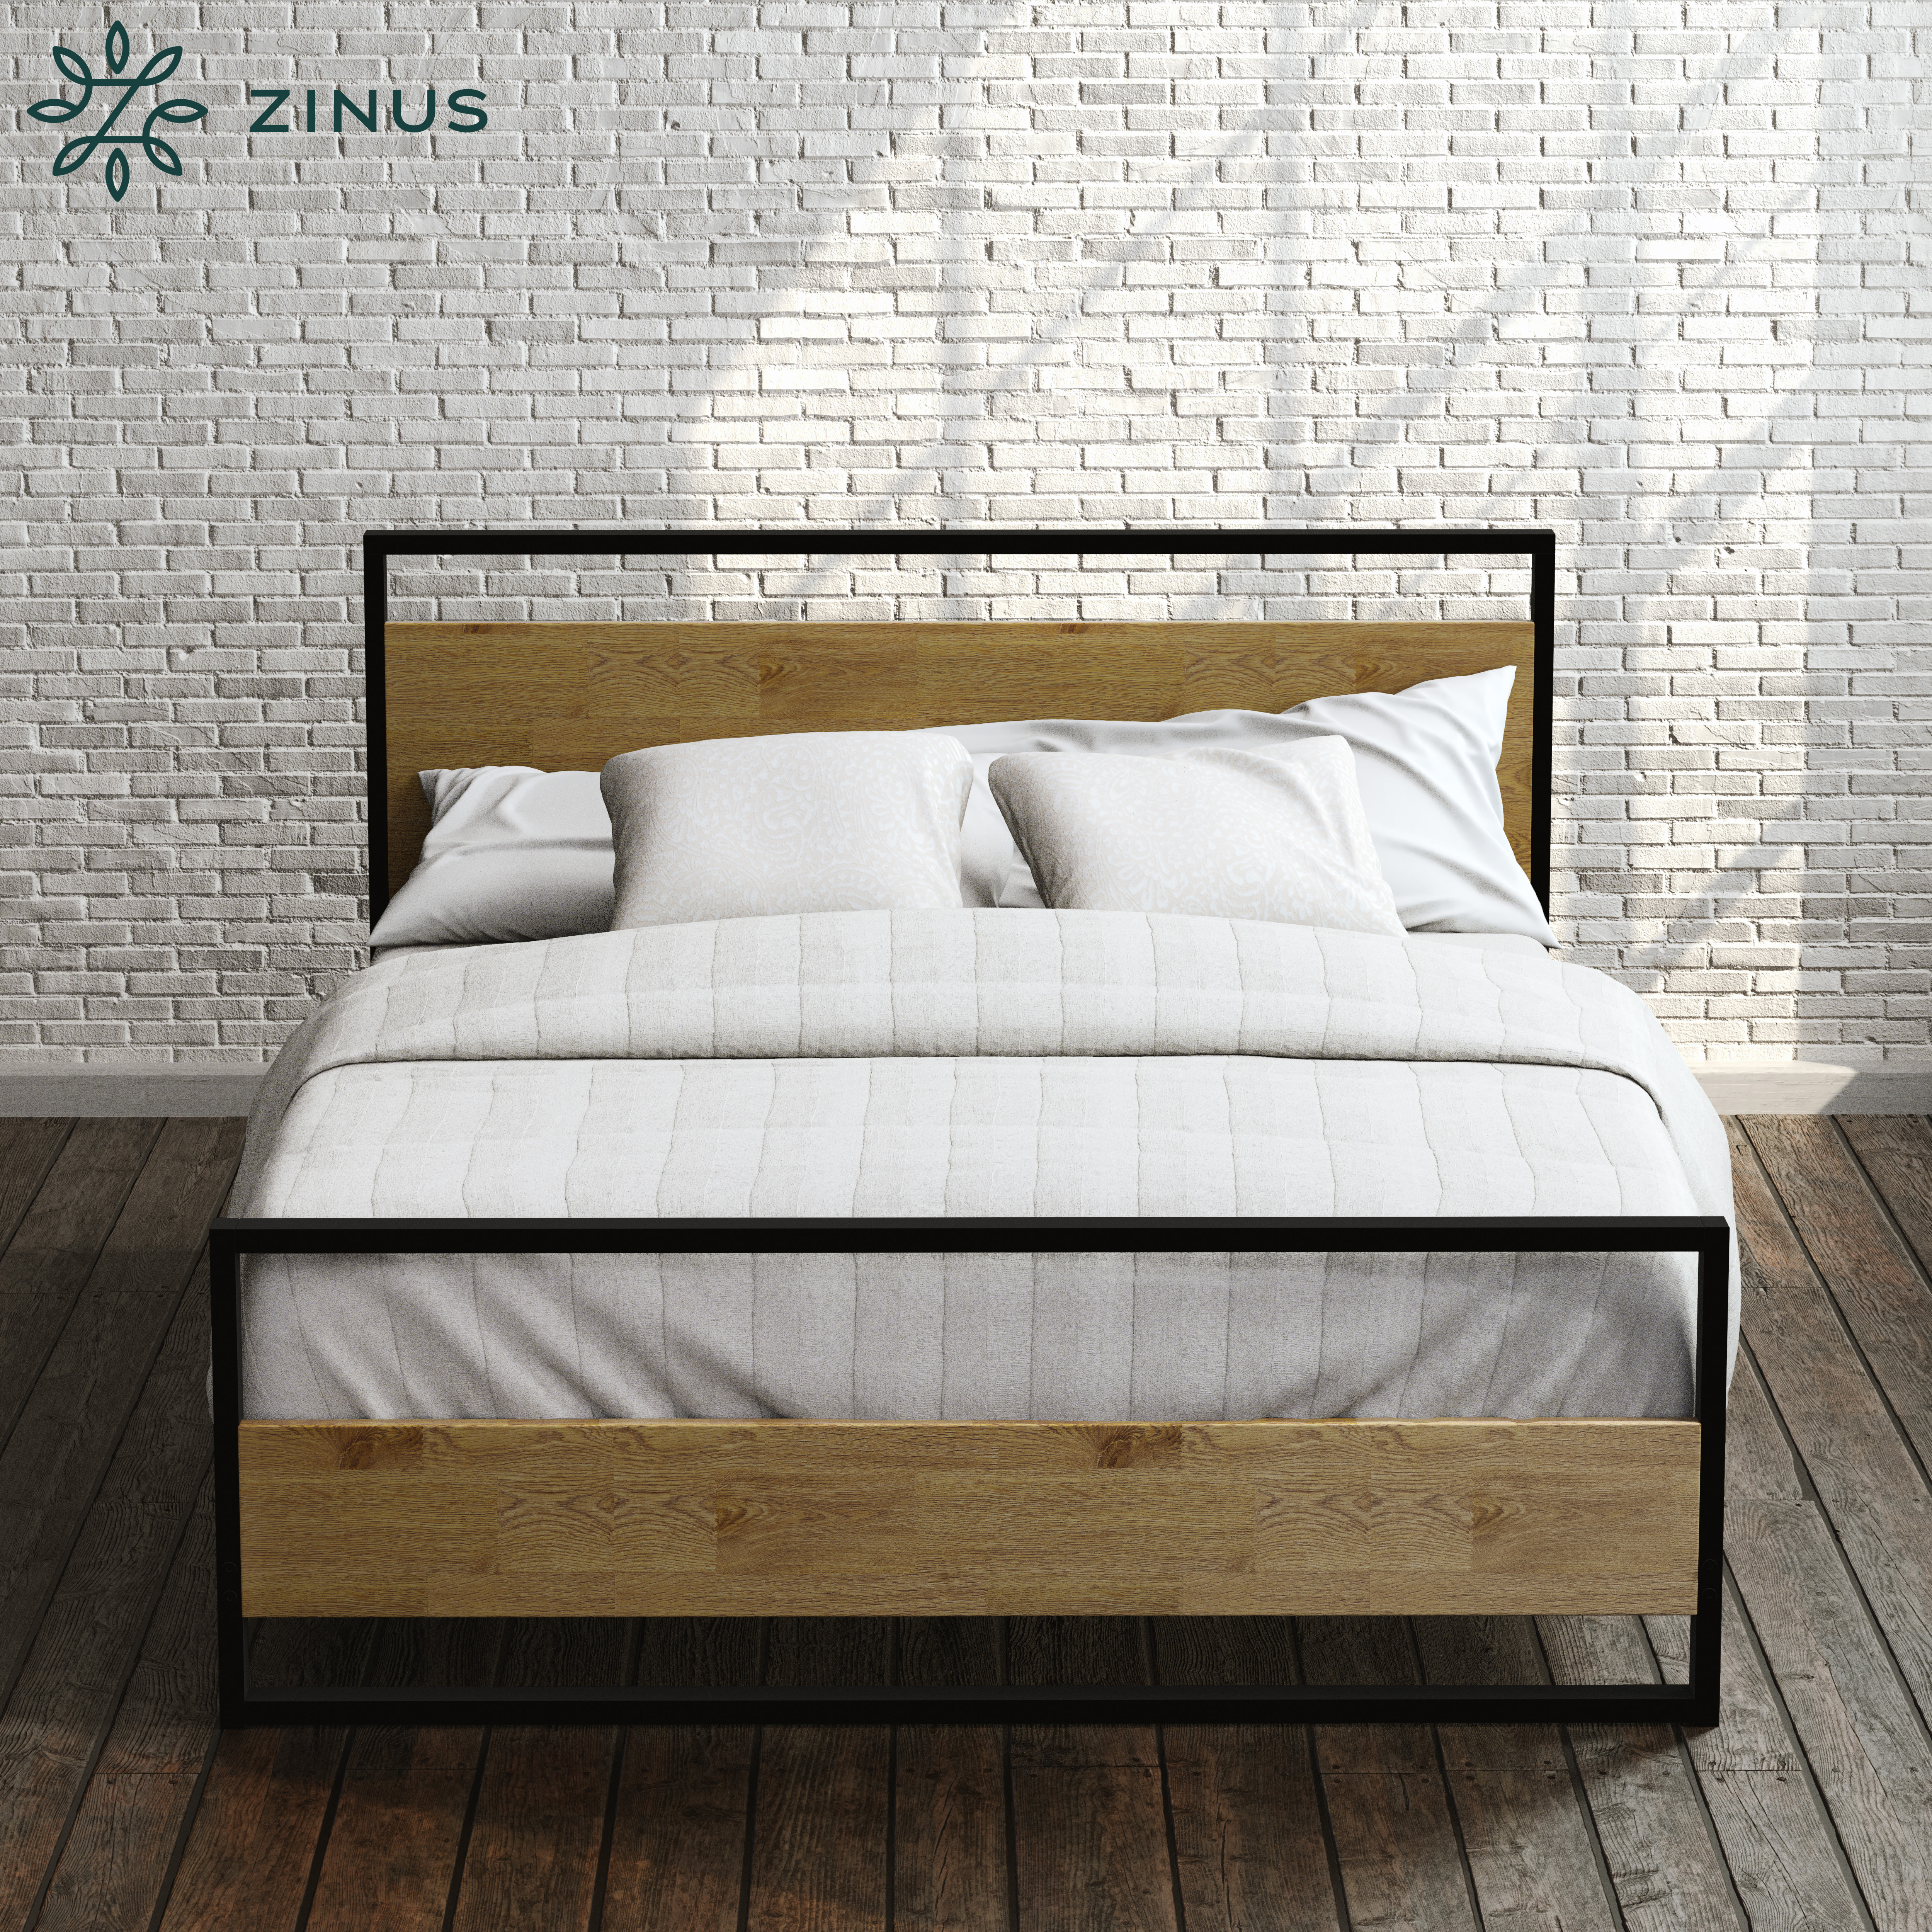 Zinus-Ironline-Metal-Wood-Bed-Frame-Queen-Single-Double-King-Base-Mattress-Pine thumbnail 2